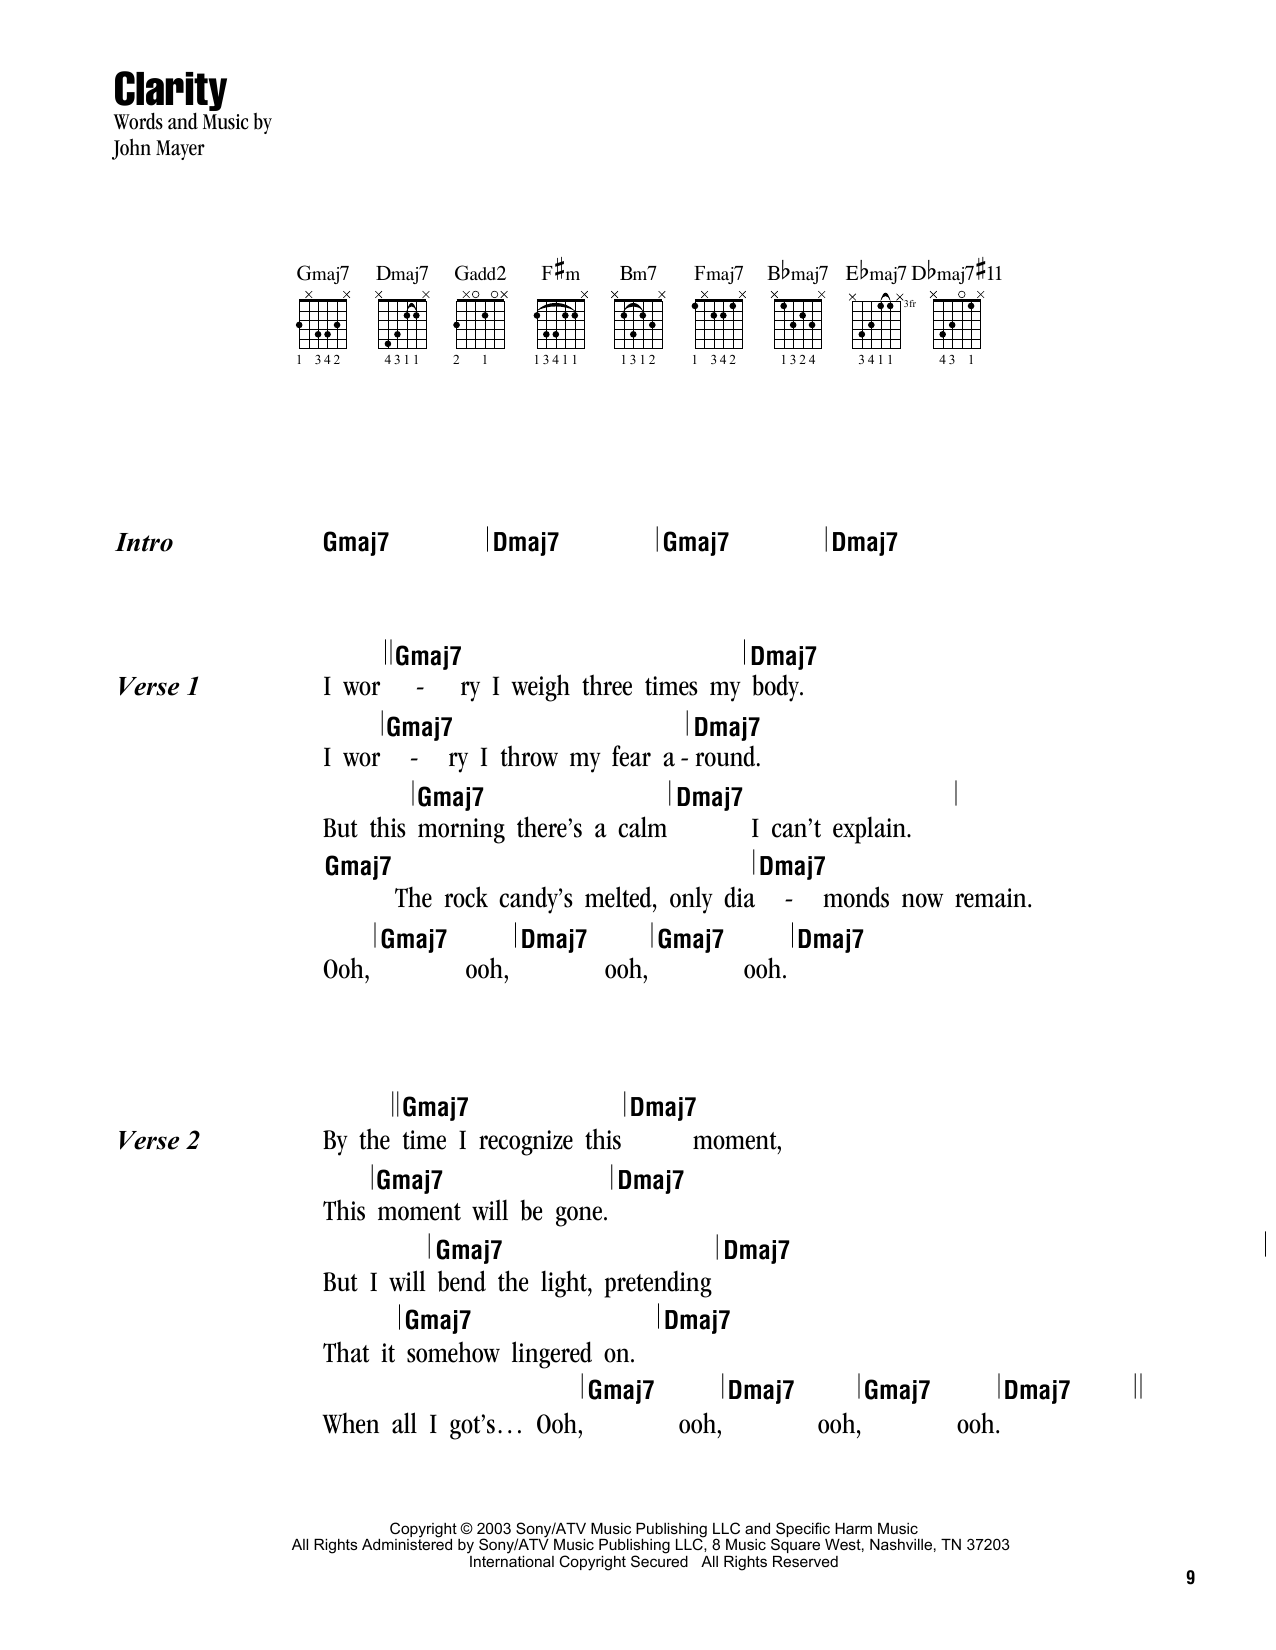 Clarity sheet music by john mayer lyrics chords 163092 clarity sheet music hexwebz Image collections